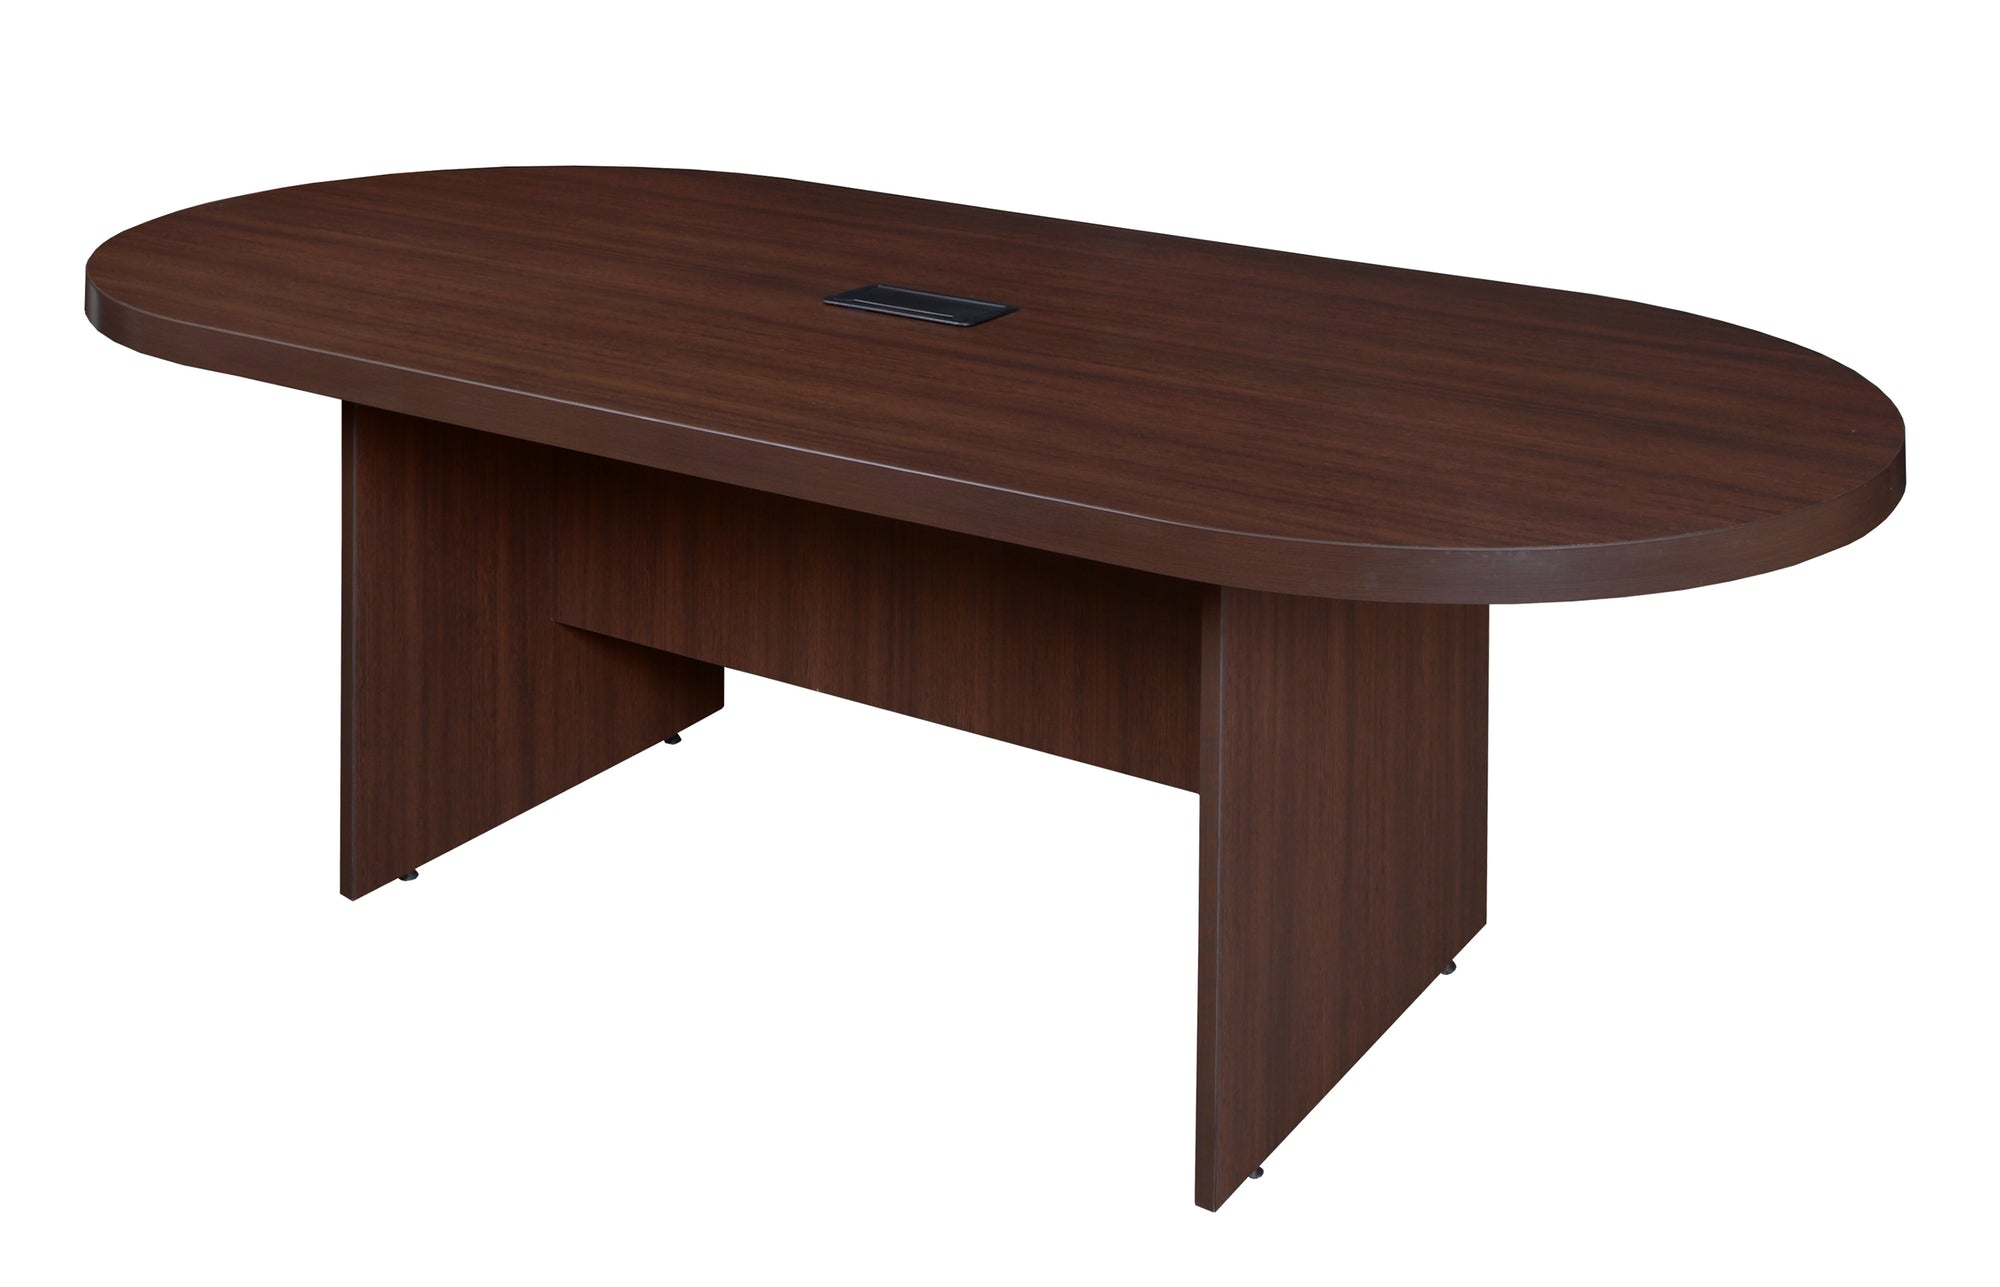 Fabulous Java 95 Conference Table With Power Data Port Home Interior And Landscaping Ponolsignezvosmurscom